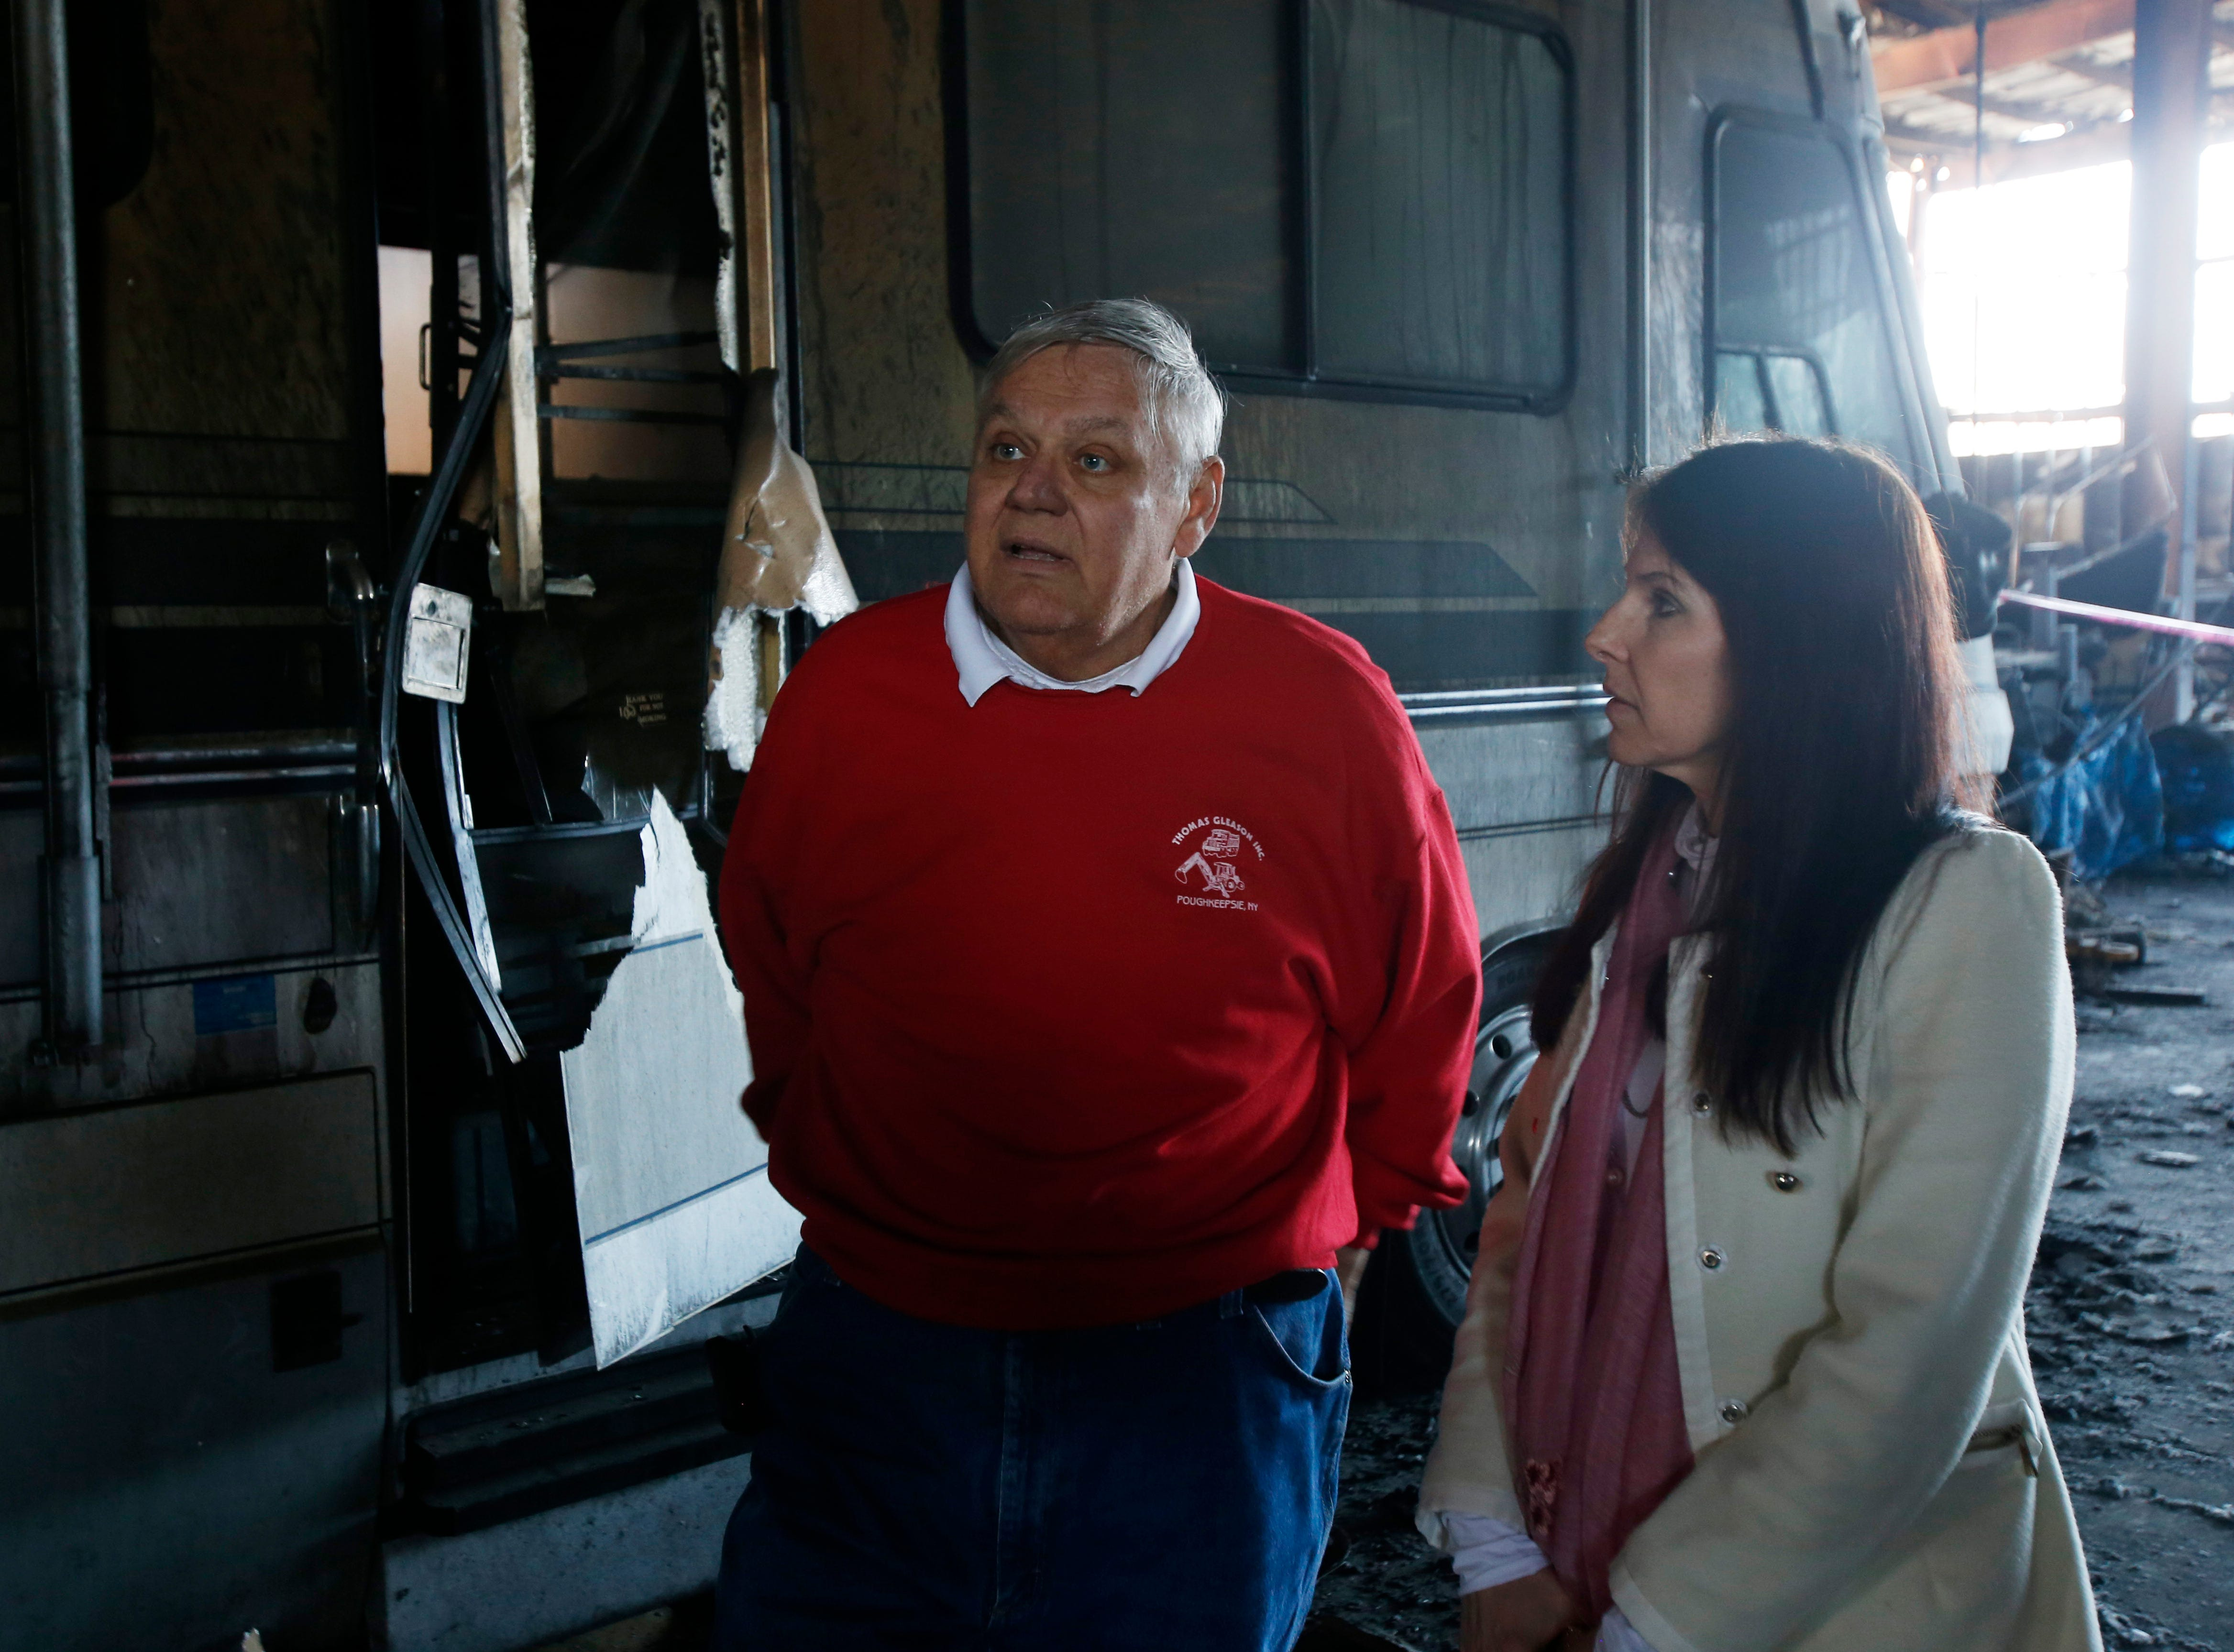 From left, Thomas and his wife Katie Gleason beside their motorhome inside their company's building in the Town of Poughkeepsie on April 17, 2019. A massive fire in March destroyed much of the building's contents and the structural integrity of the building. The couple had planned to retire and drive around the country, but due to the fire they are having to defer their plan.